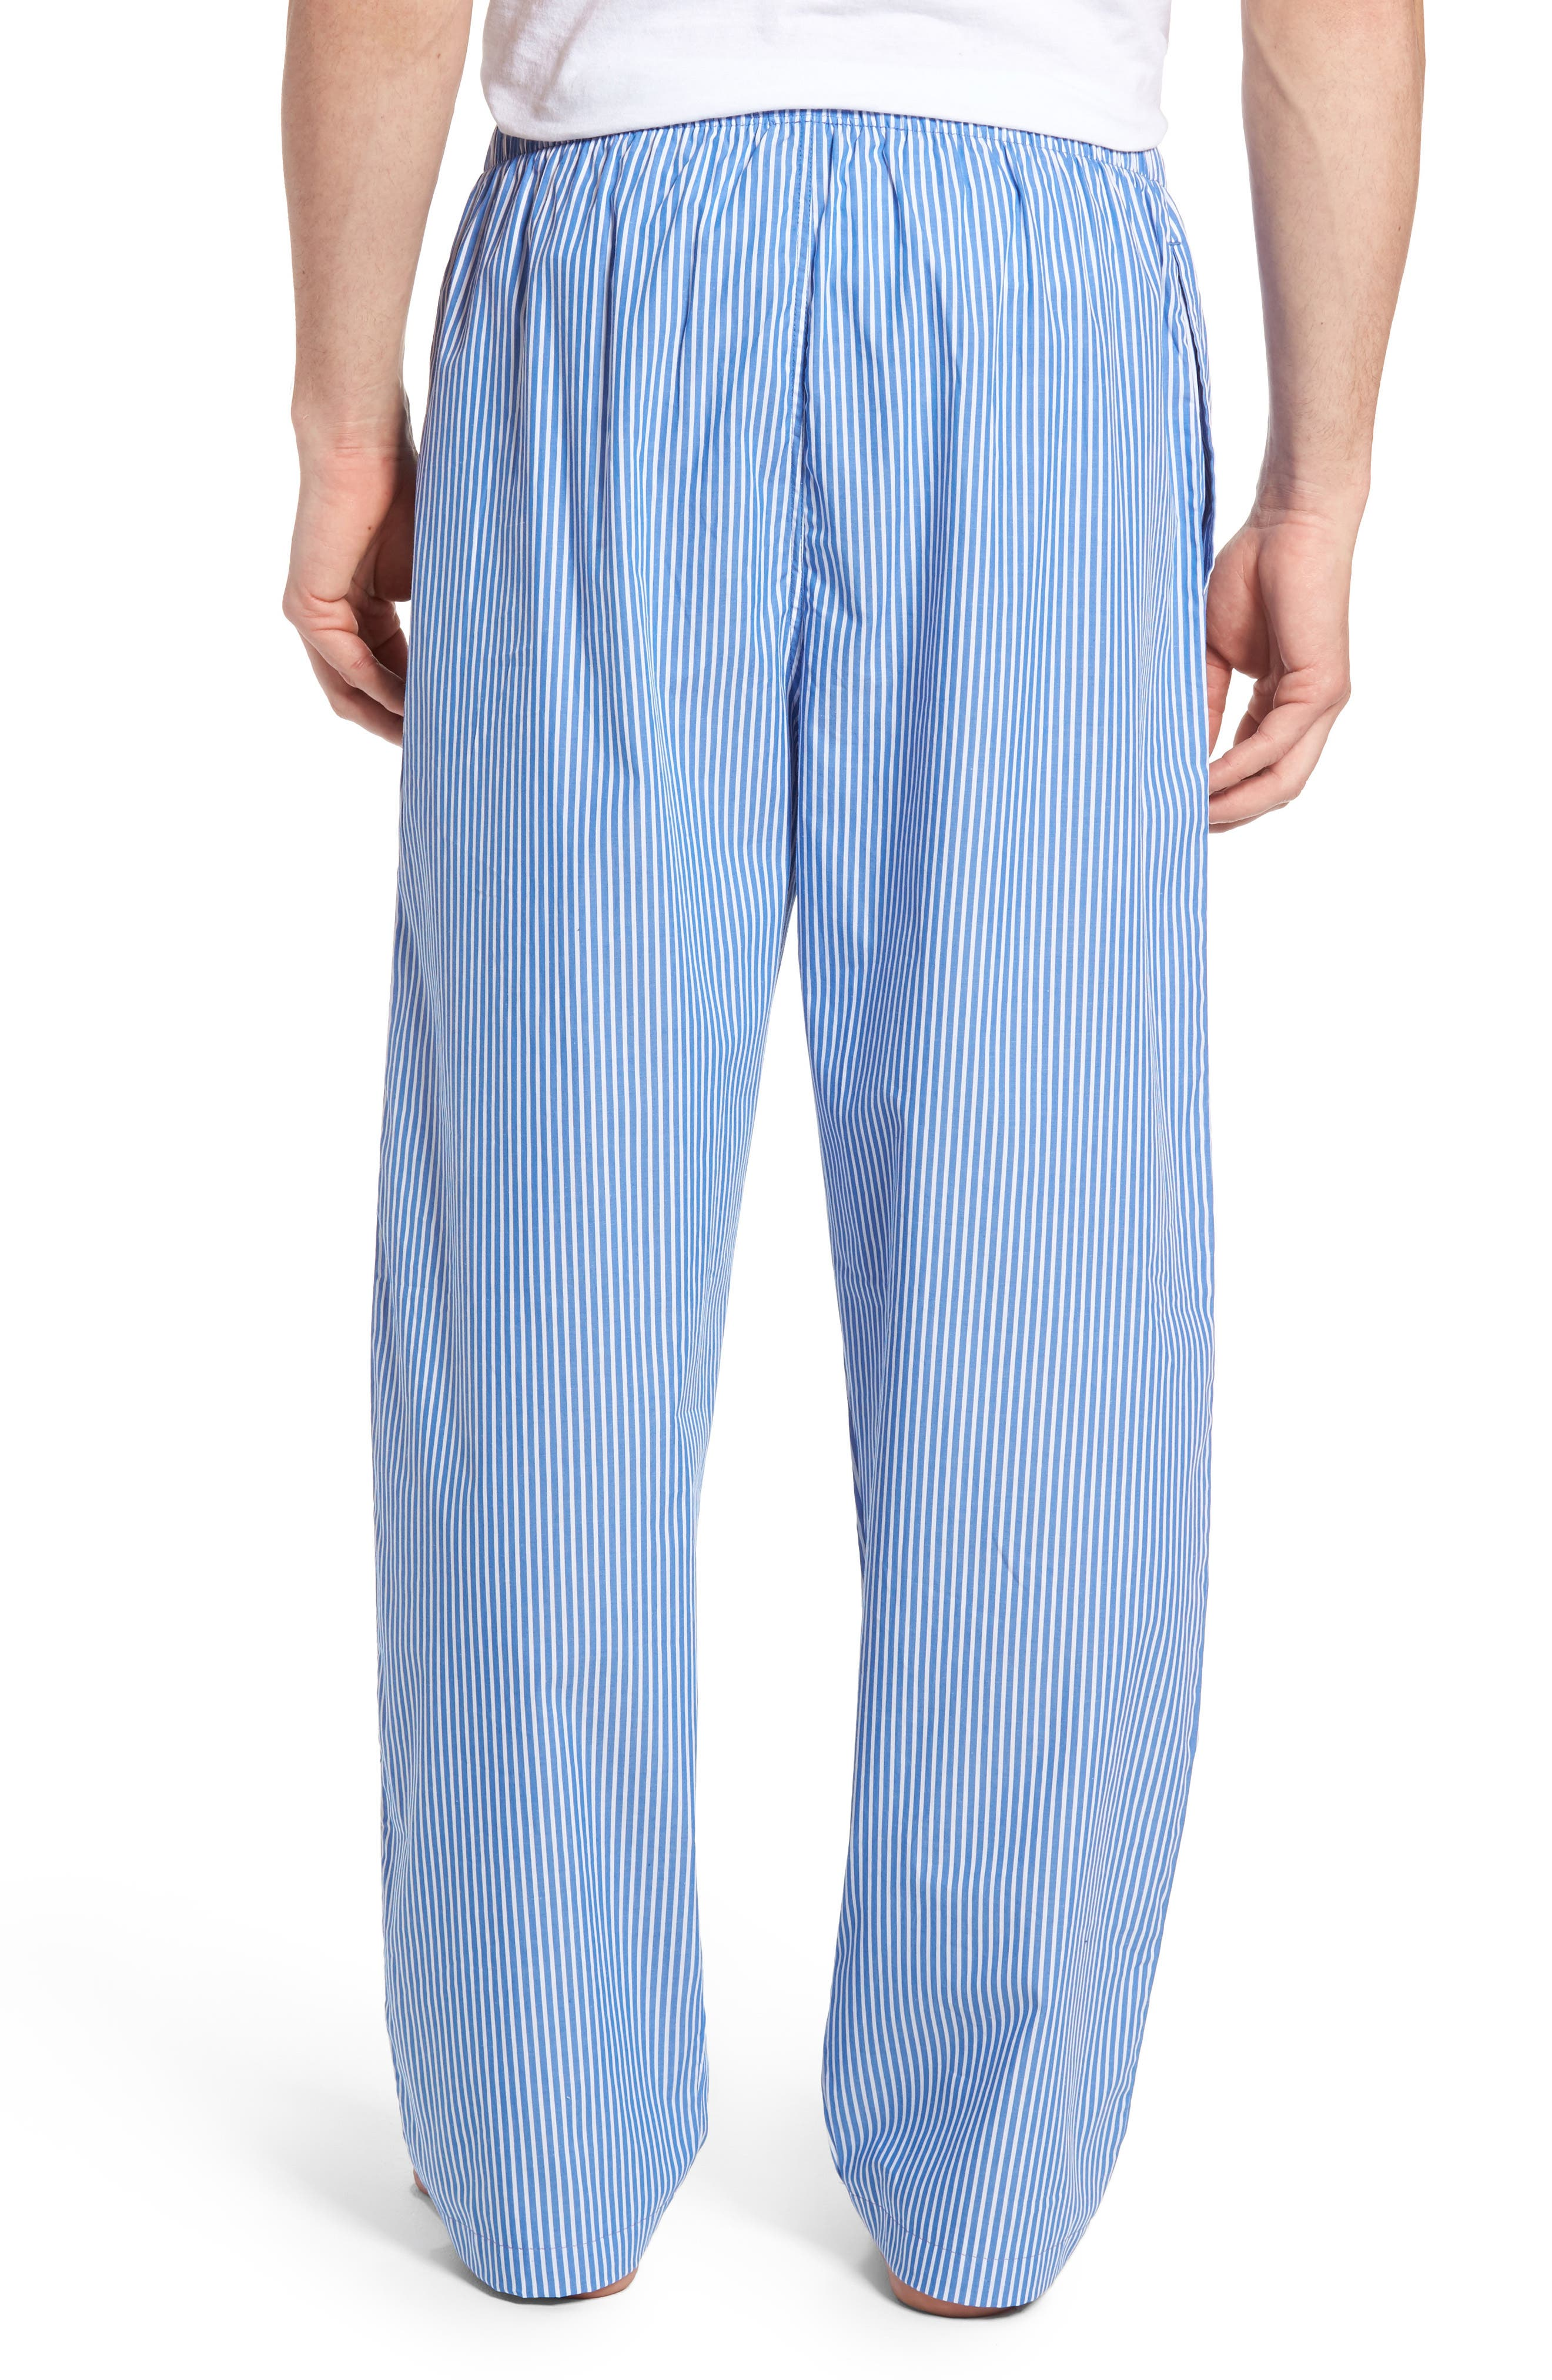 Cotton Lounge Pants,                             Alternate thumbnail 2, color,                             King Blue Stripe